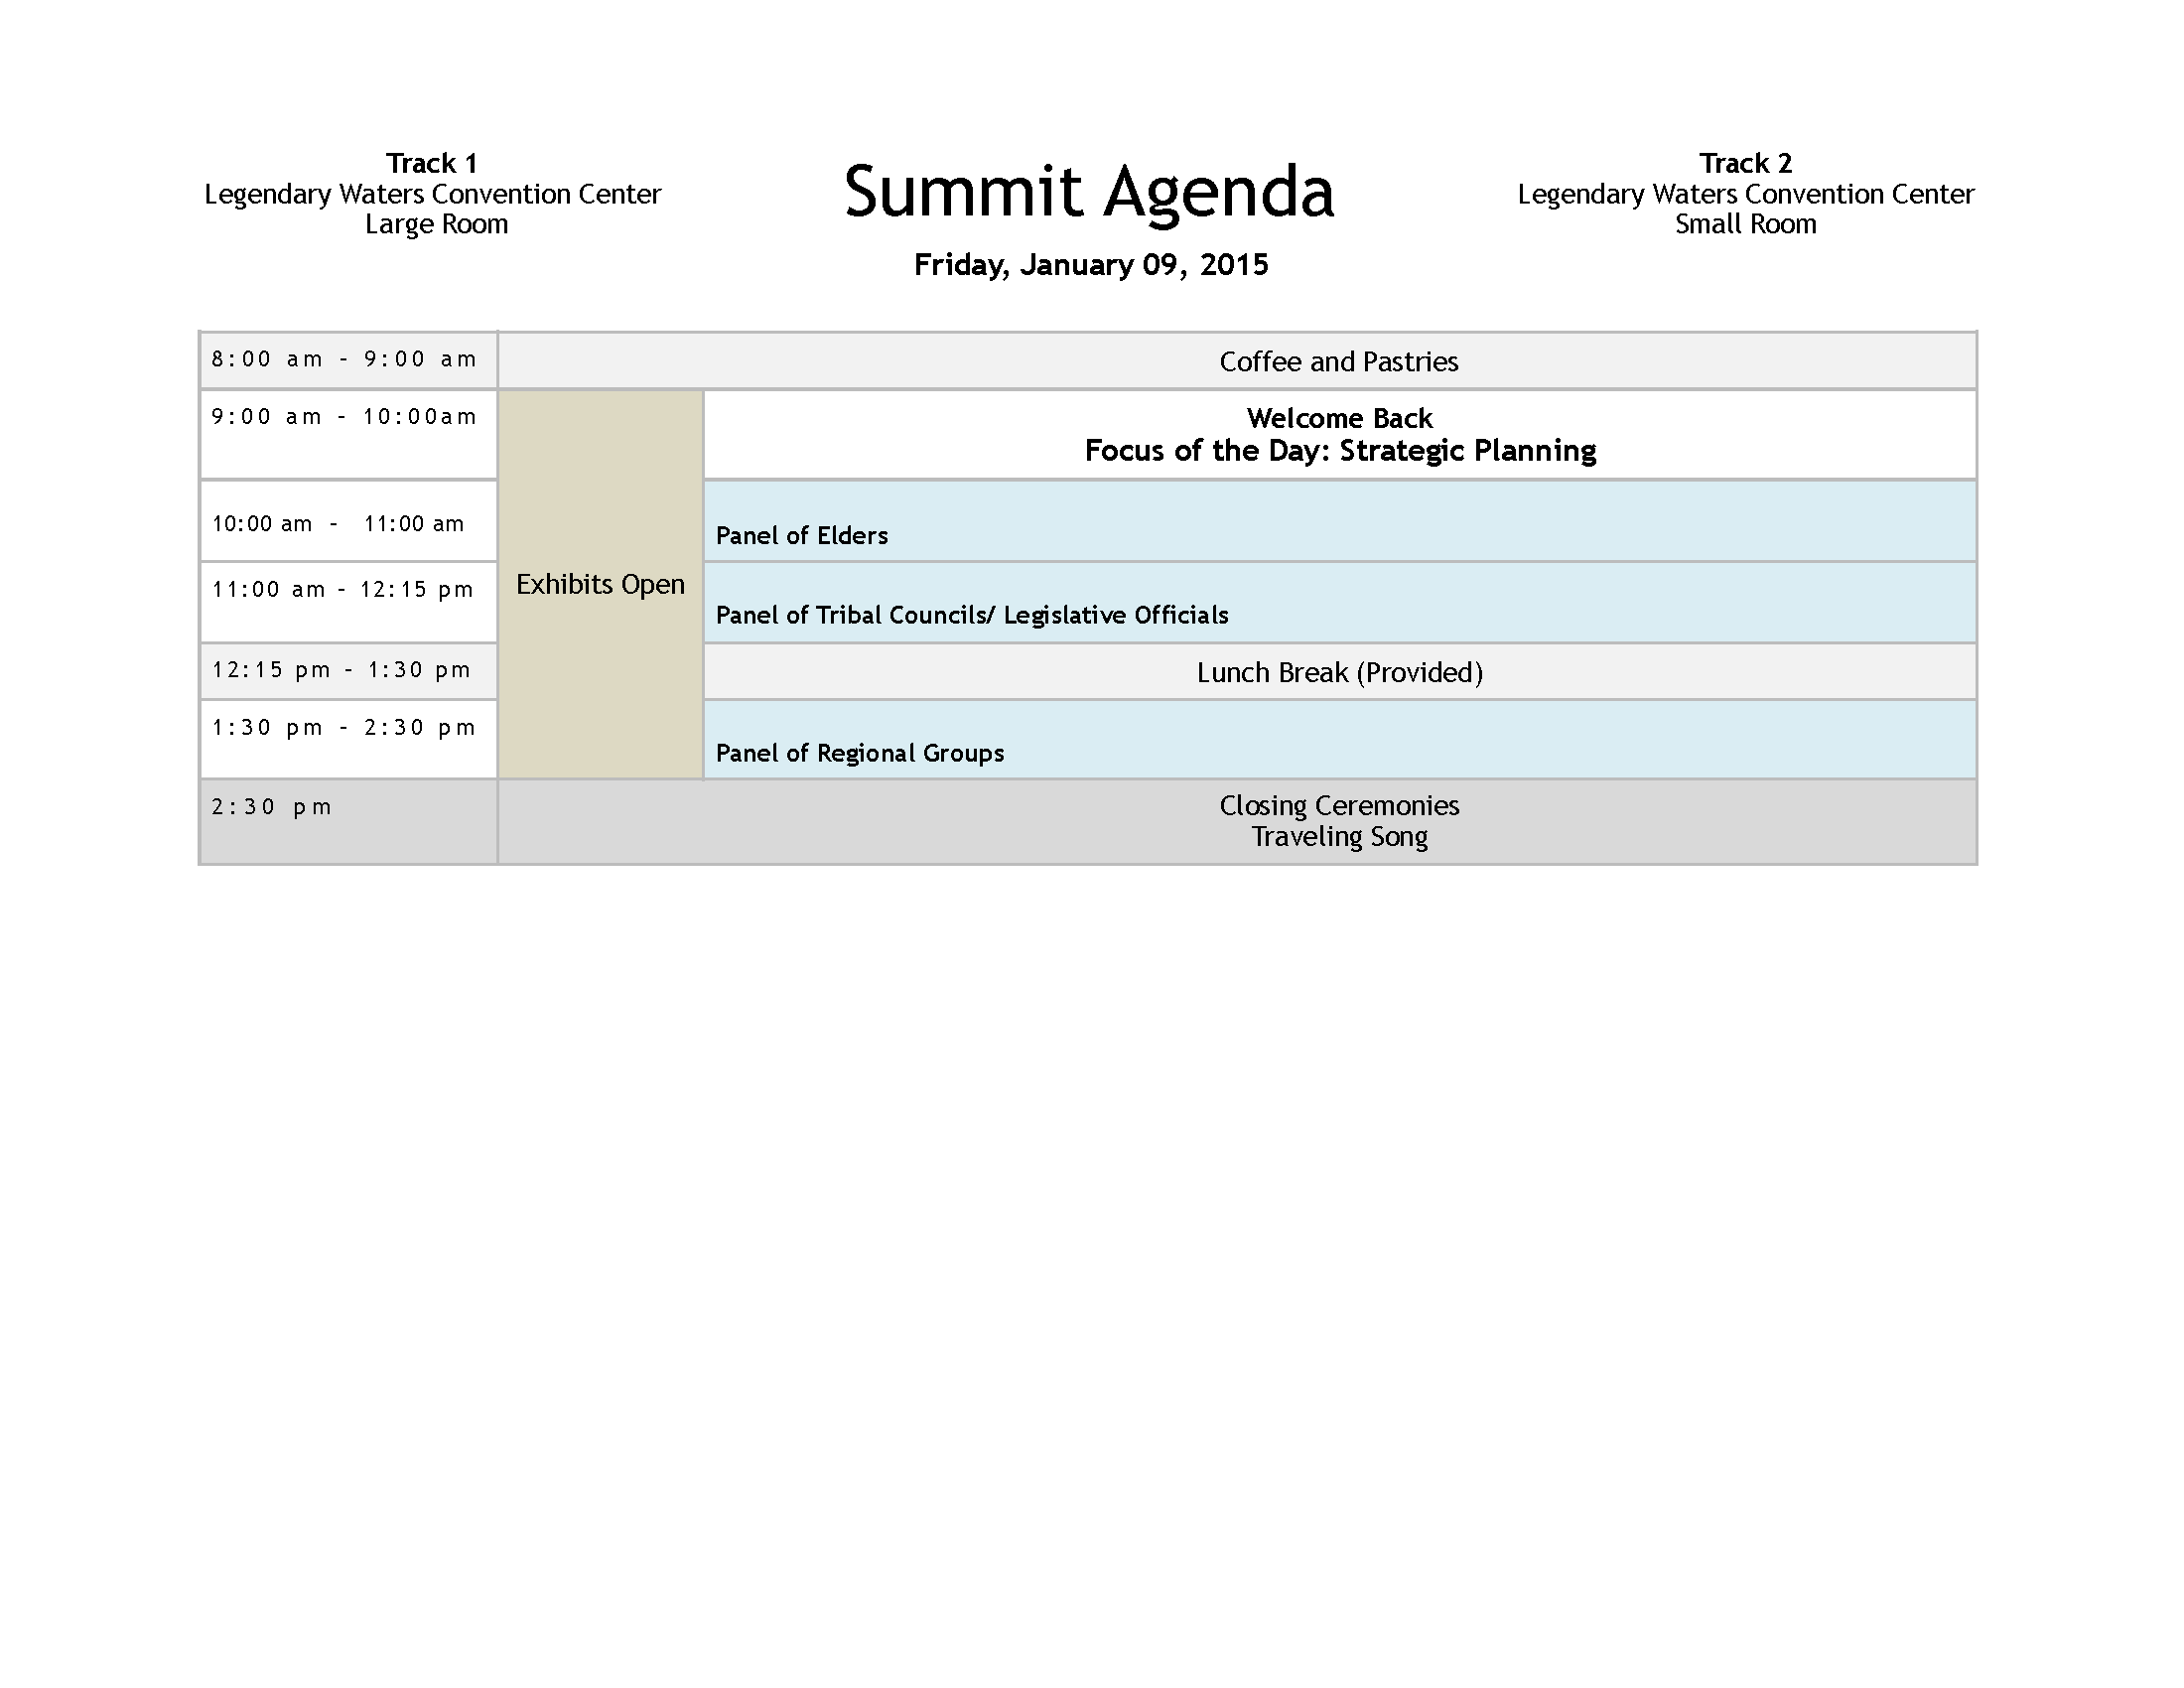 Summit Agenda Final_Page_4.png